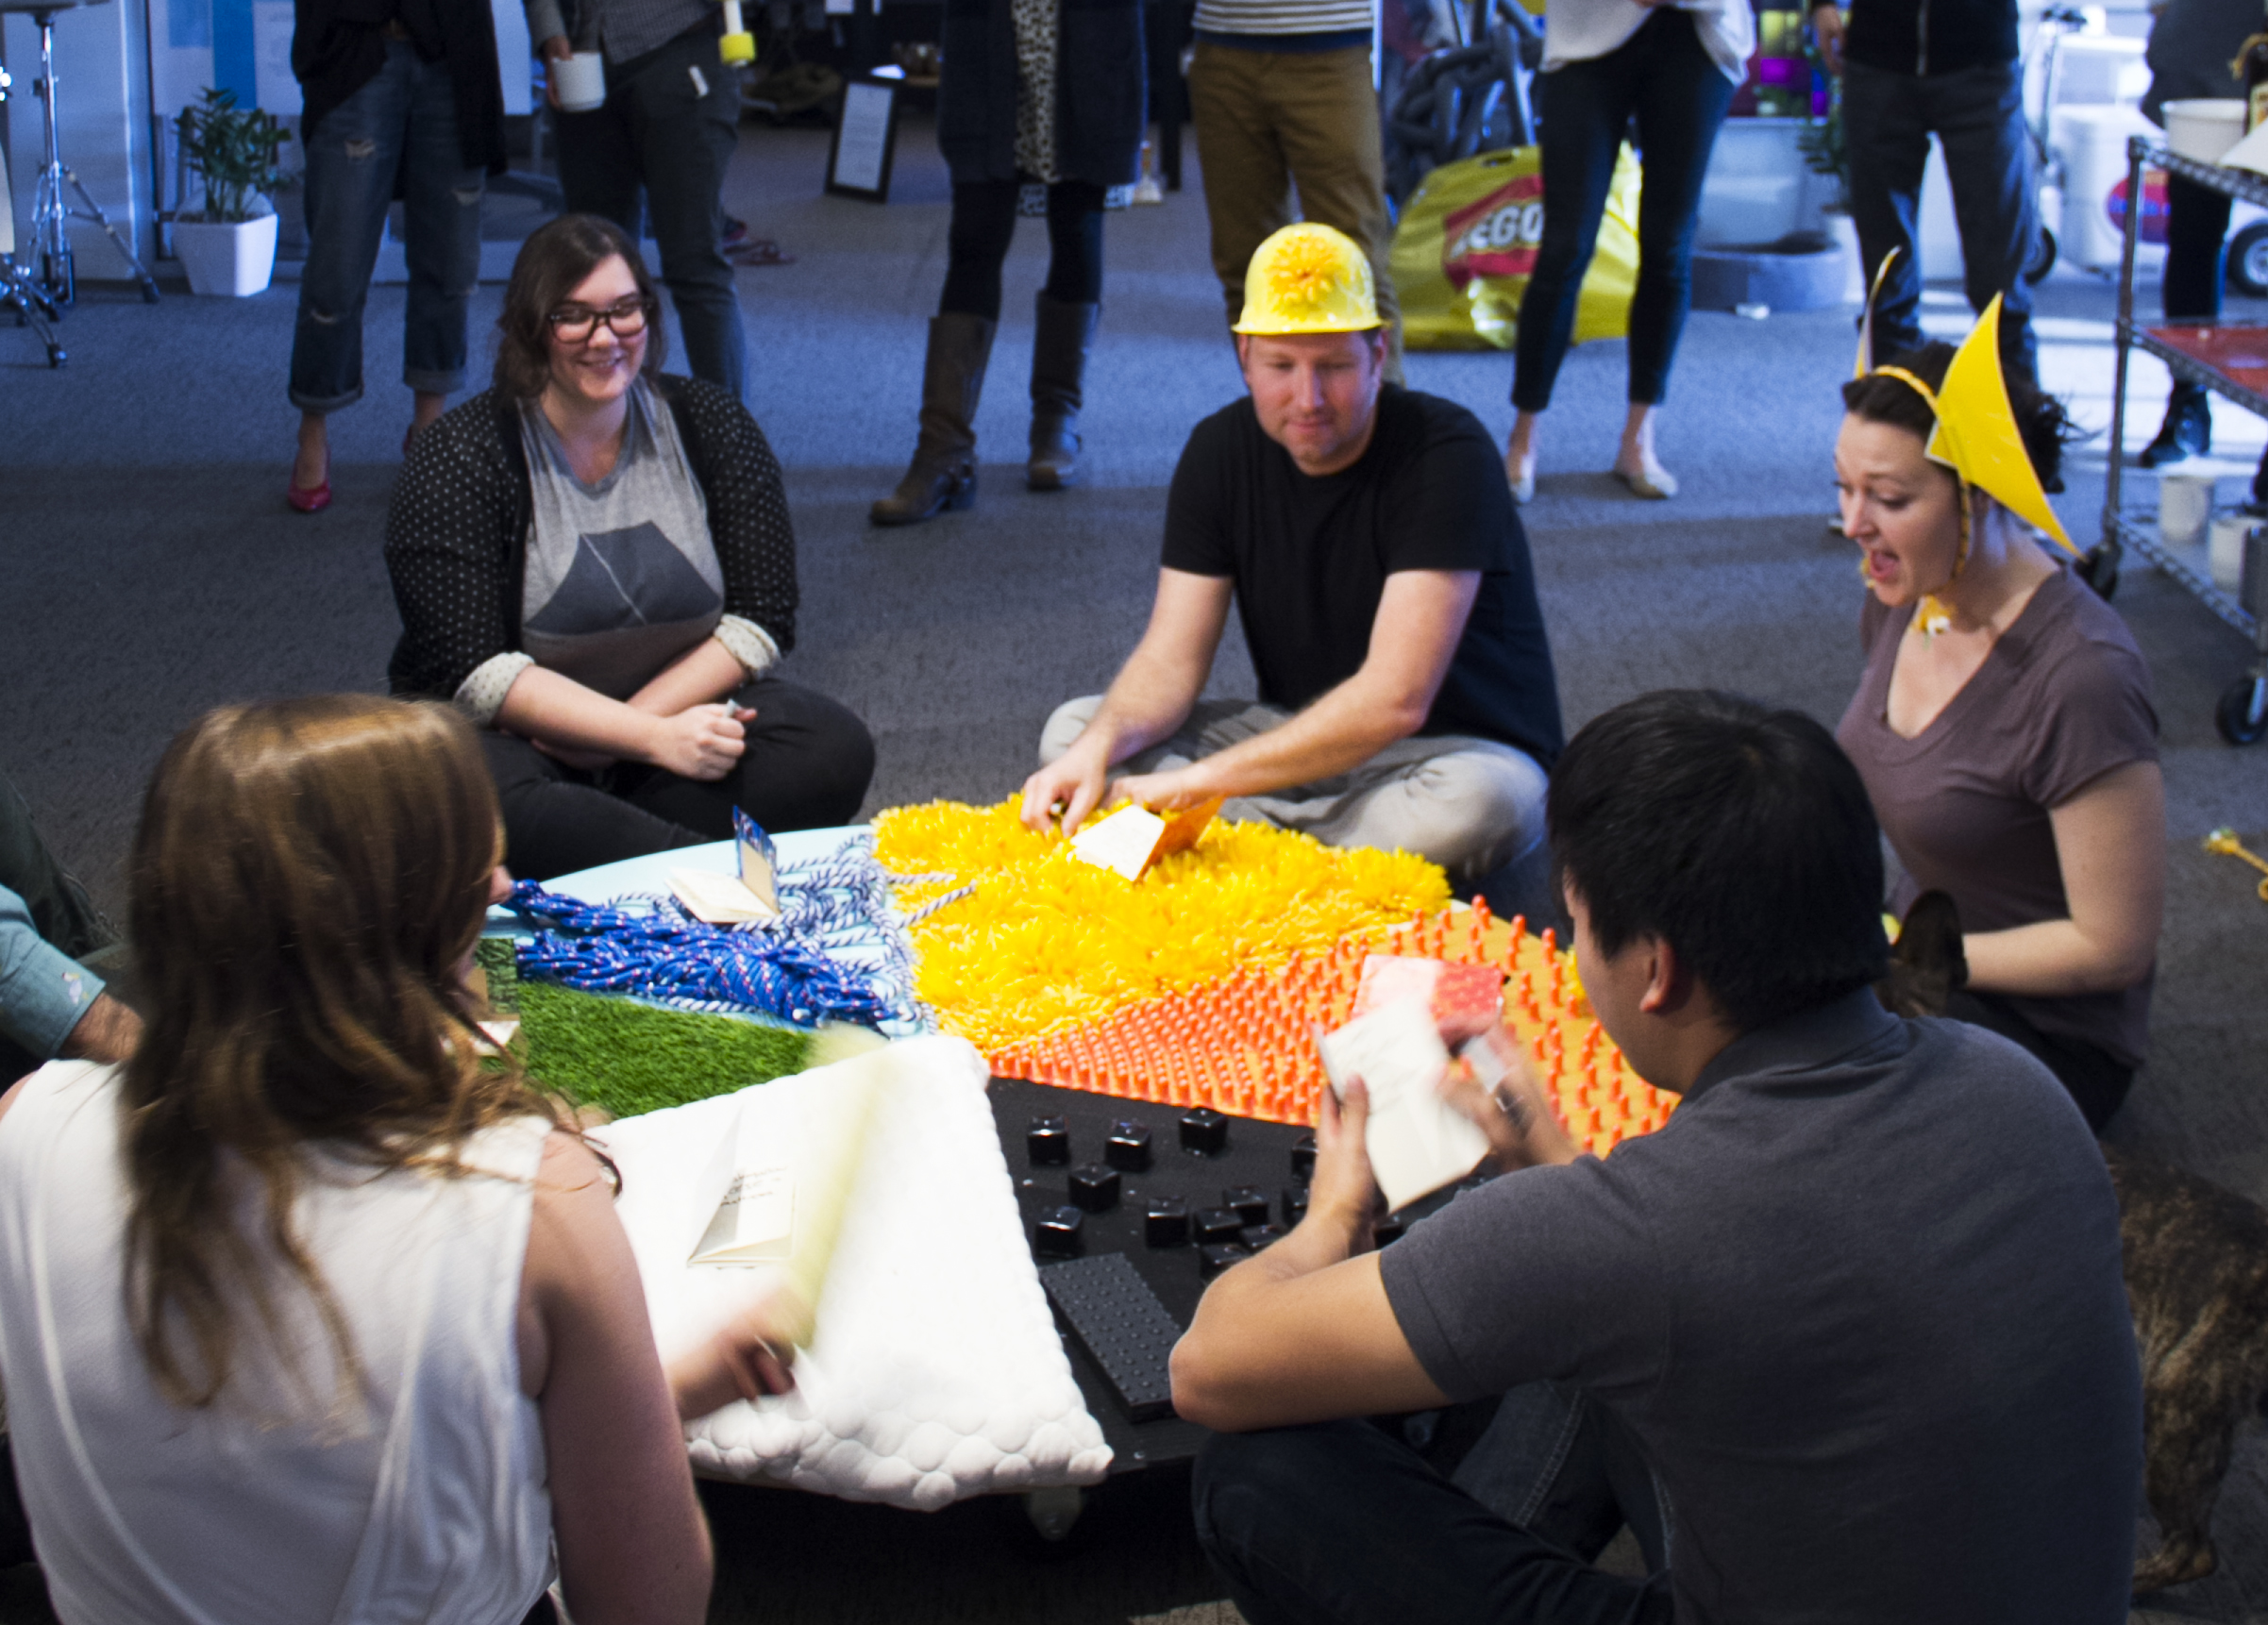 Sparking Creativity in Office Environments